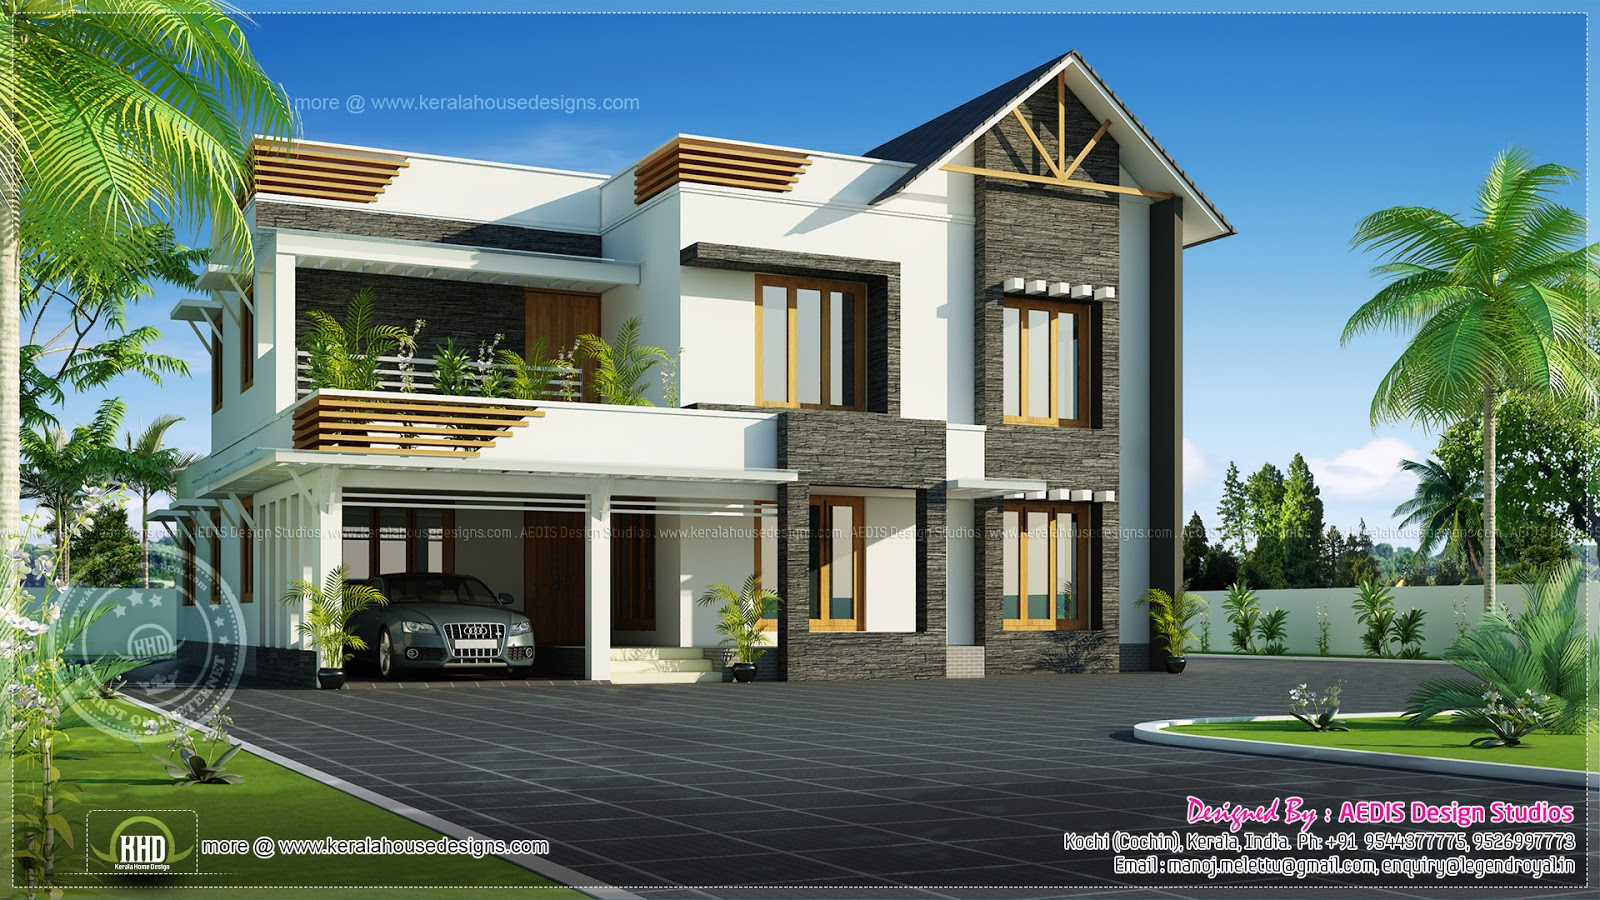 House Plans With Pool Inside likewise New Kerala Home At 1955 Sq Ft Idukki moreover Interior Design Ideas For Manufactured Homes furthermore Sa House Plans Drawing moreover Casas Estilo Americano. on modern luxury 7 bedroom floor plans